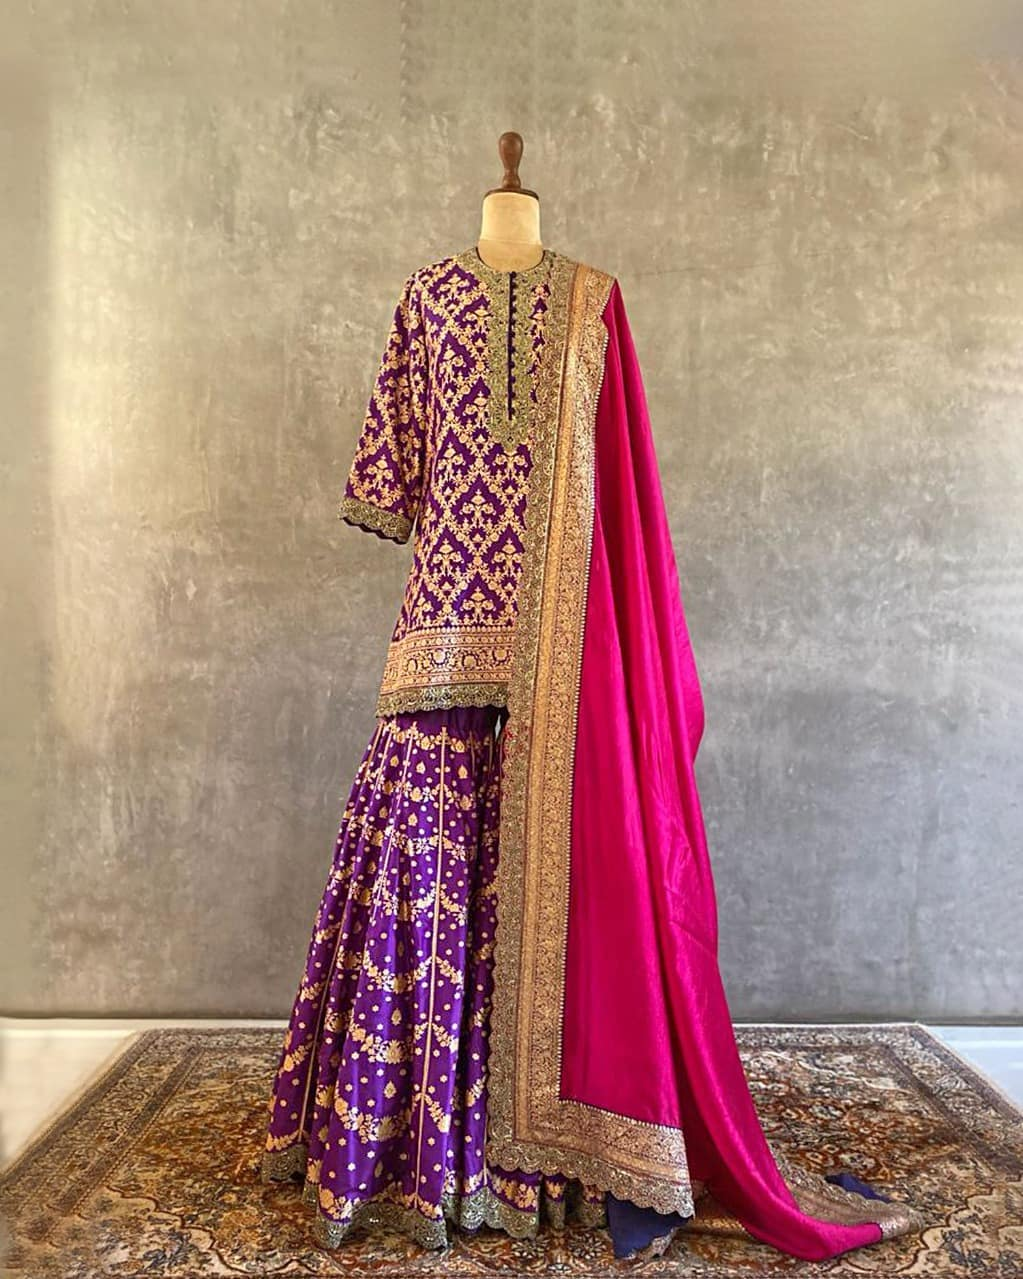 Beautiful purple benares Saharara set. Benares reminds us what it is to lean on tradition heritage and faith but also how we can take from it and make it our own-quite like the bride we design for who refuses to be defined in any absolute terms. 2021-09-05